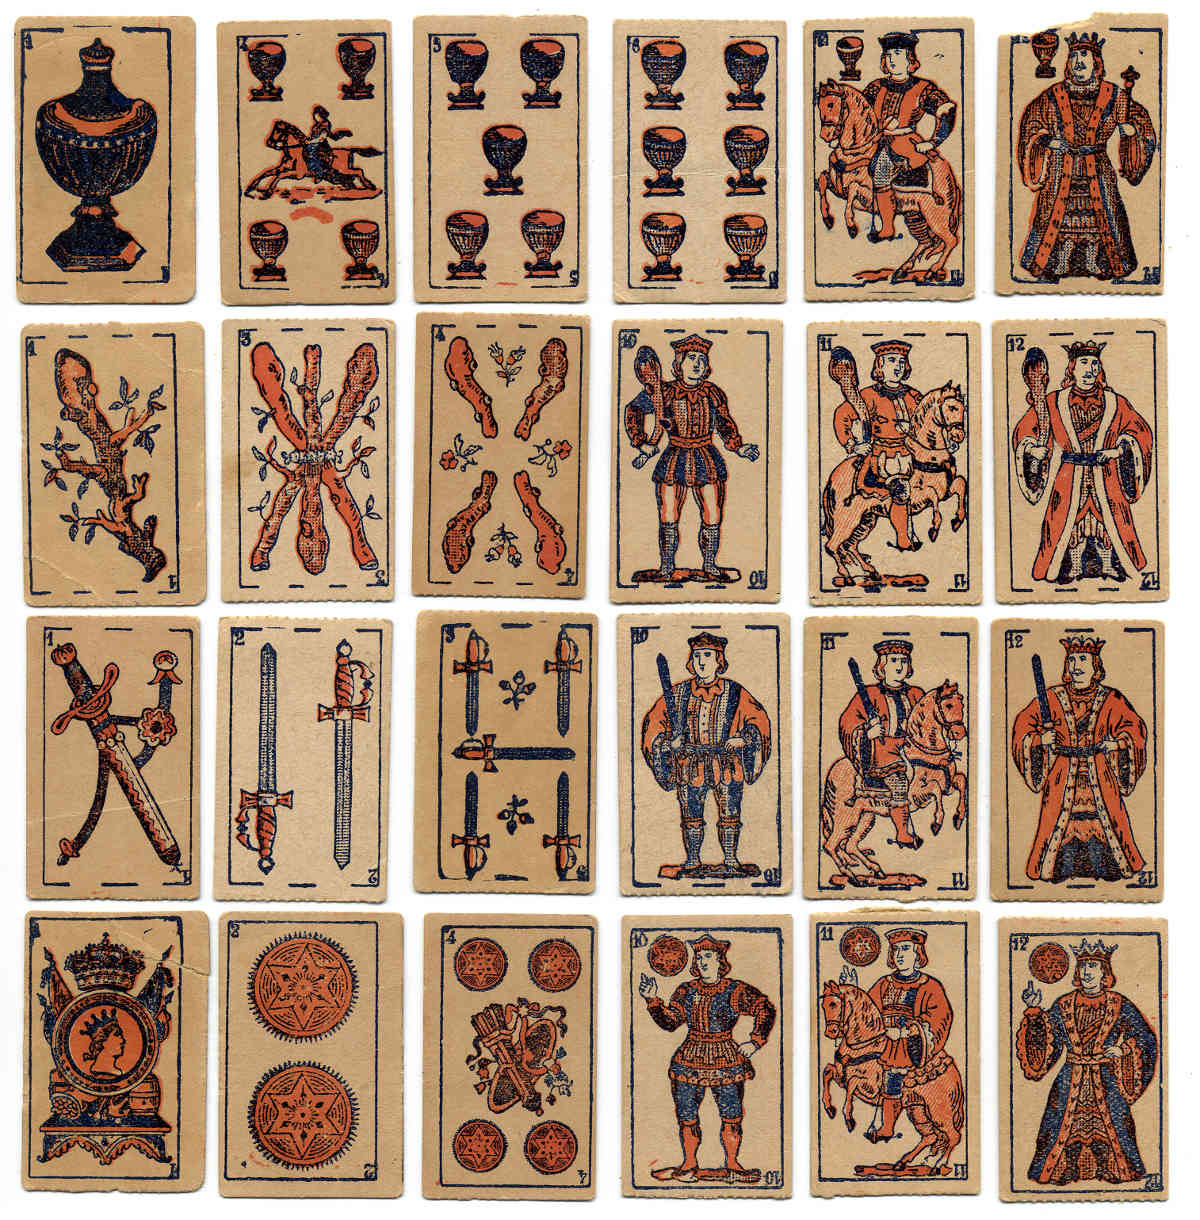 Children's miniature playing cards with Proverbs and Maxims, anonymous manufacturer, Montevideo, c.1928